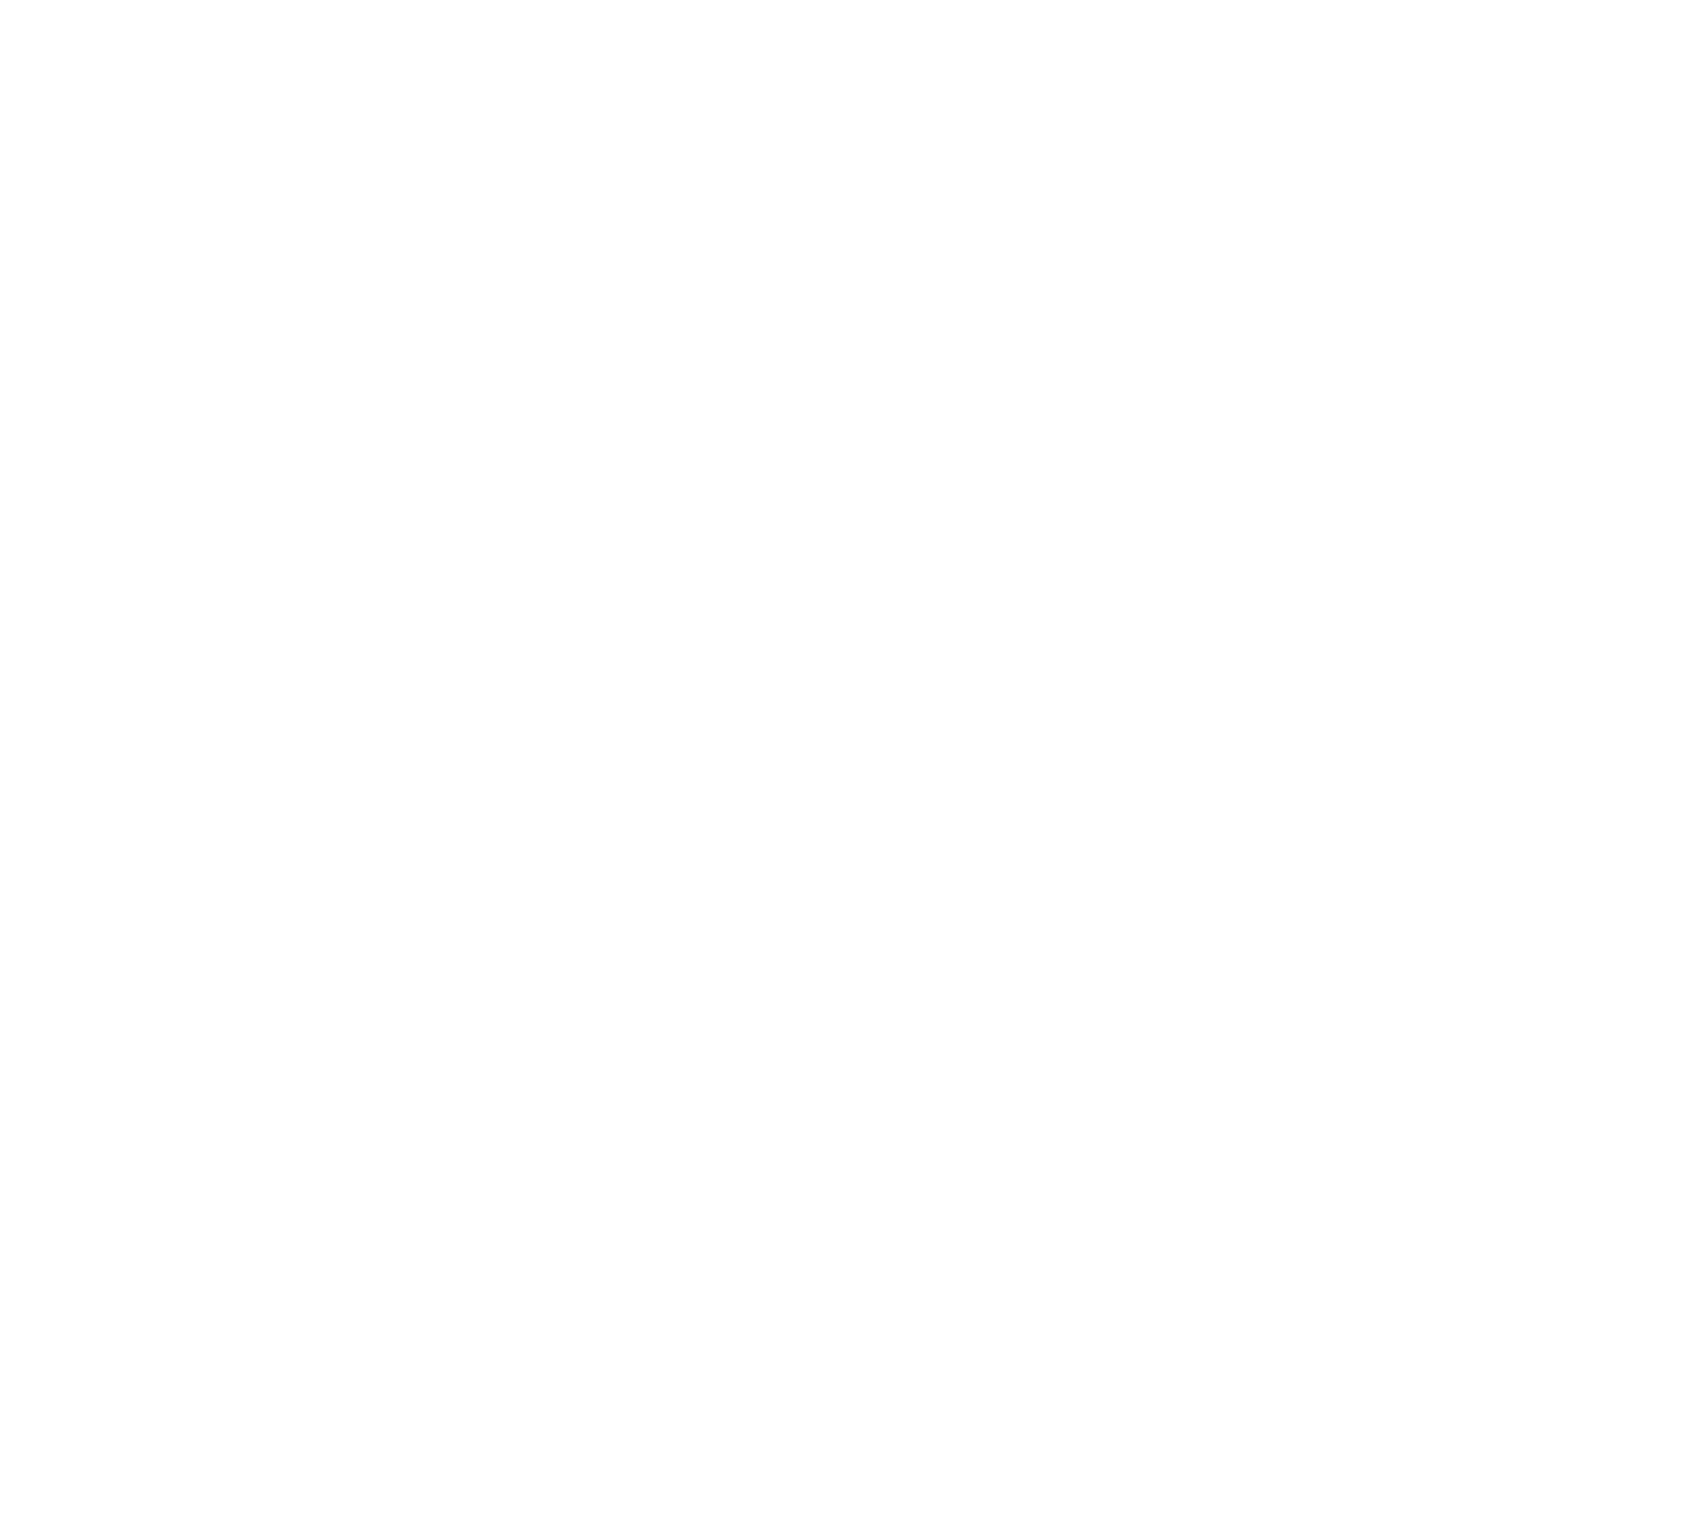 soydesserts.png